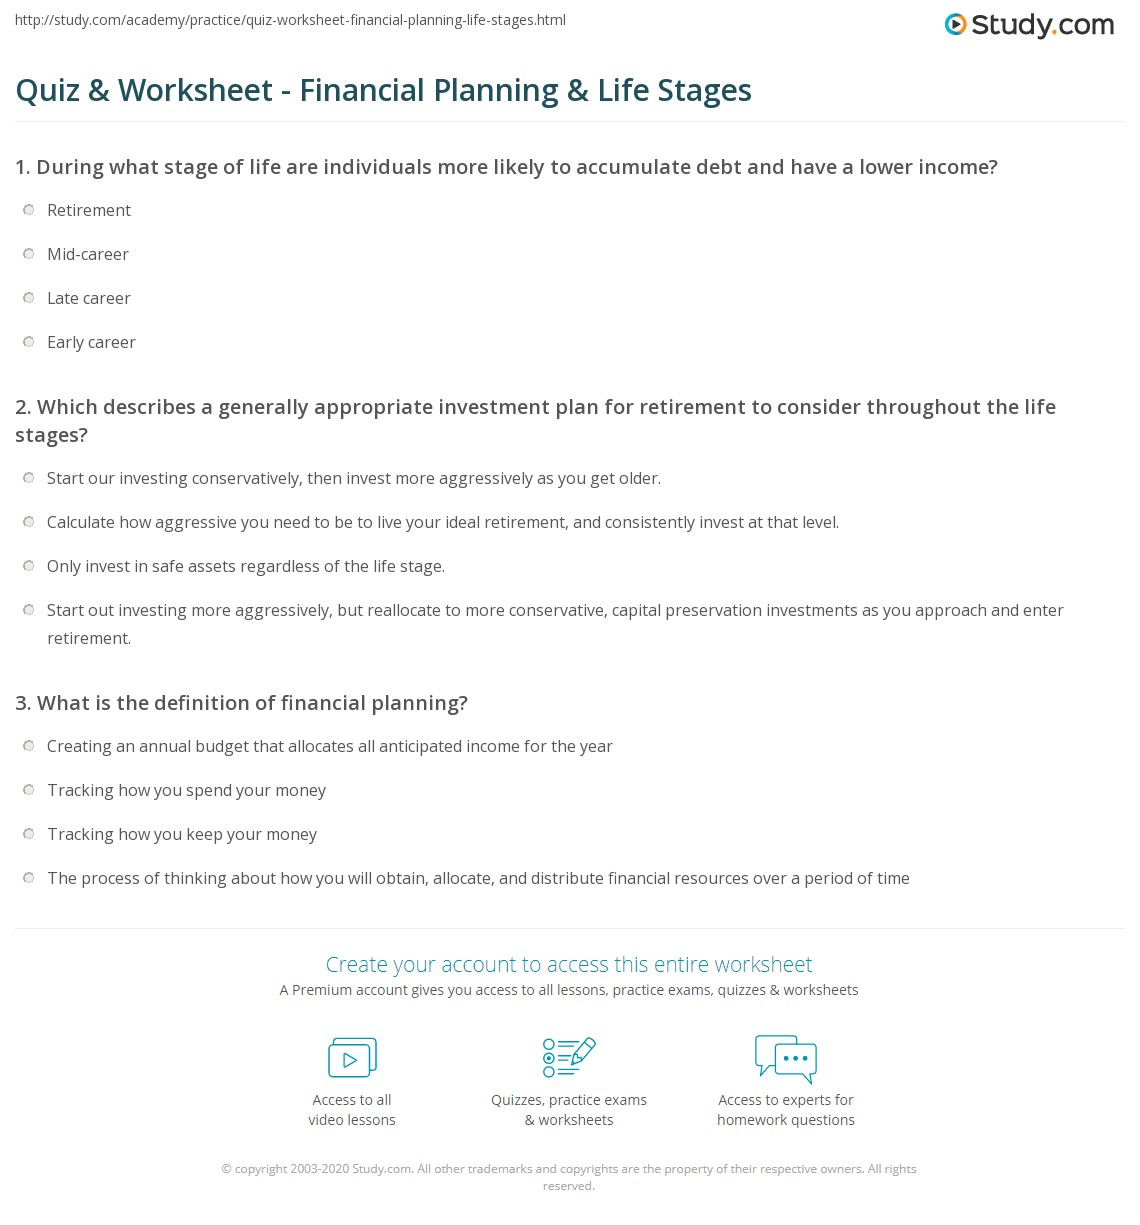 quiz & worksheet - financial planning & life stages | study